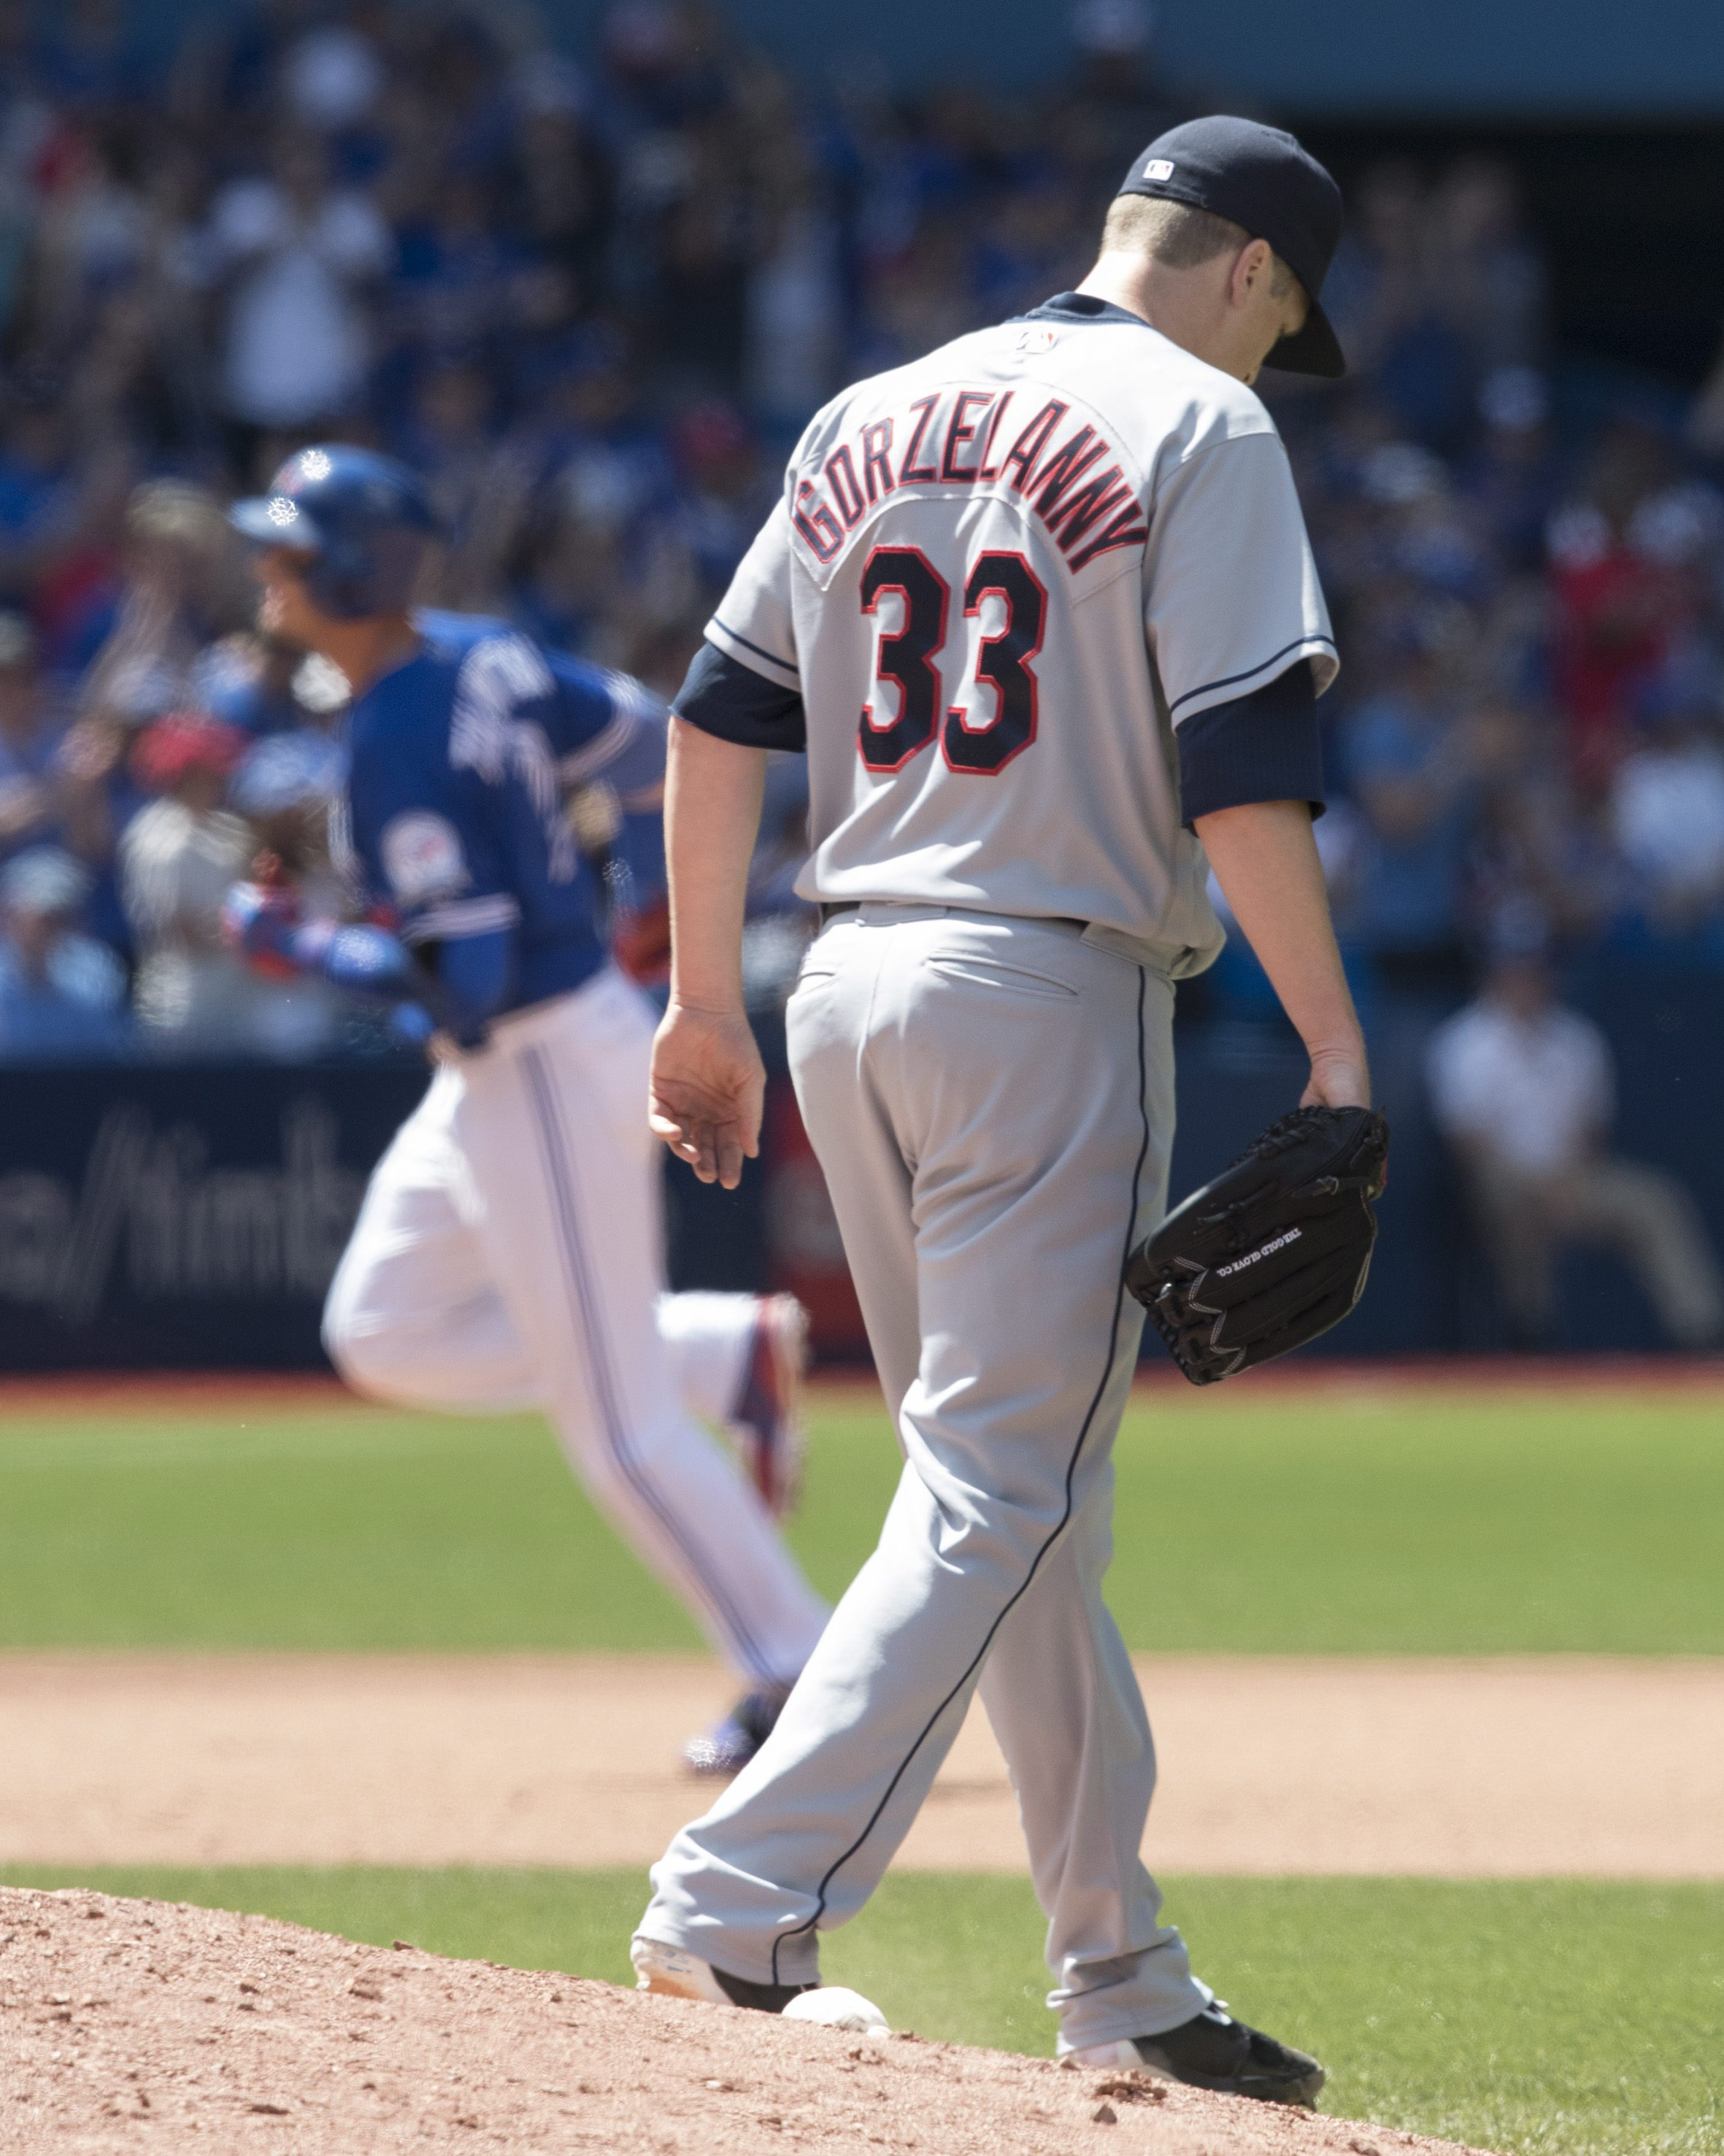 Cleveland Indians pitcher Tom Gorzelanny, right, walks off the mound after giving up a three-run home run to Toronto Blue Jays' Troy Tulowitzki circling the bases behind him during sixth inning baseball action in Toronto on Sunday, July 3, 2016.  (Fred Th